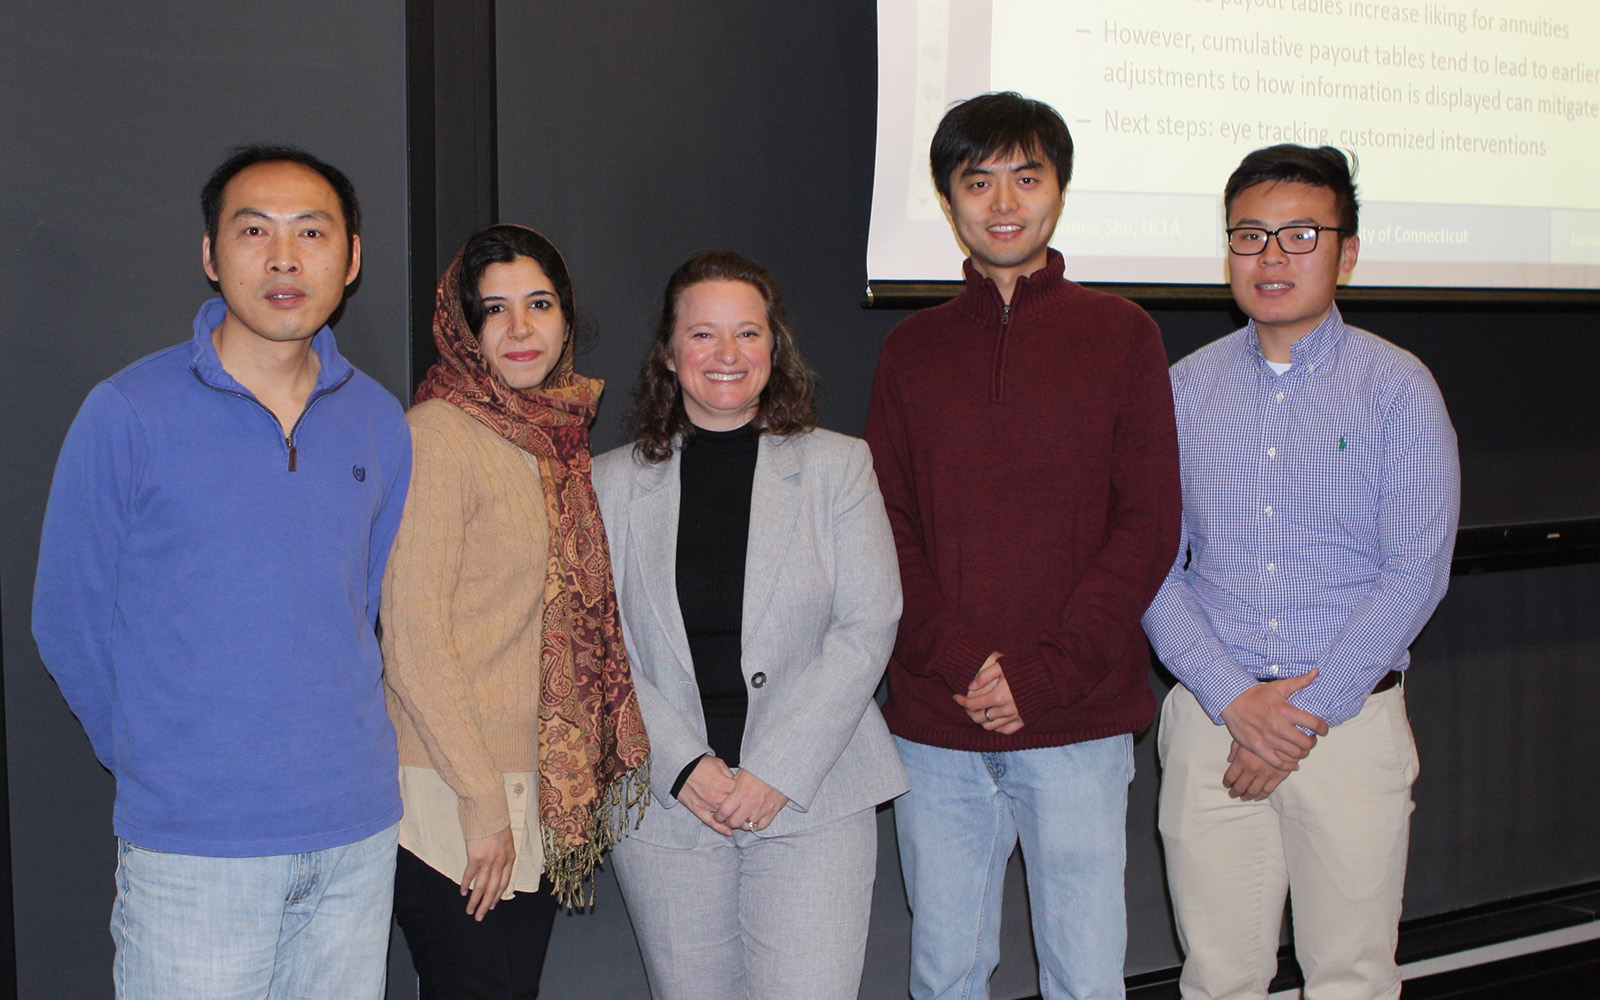 Suzanne Shu (centered) with Ph.D. Students Bin Li, Zahra Tohidinia, Lu Huang, and Qizhou Wang. (Nancy White/UConn School of Business)